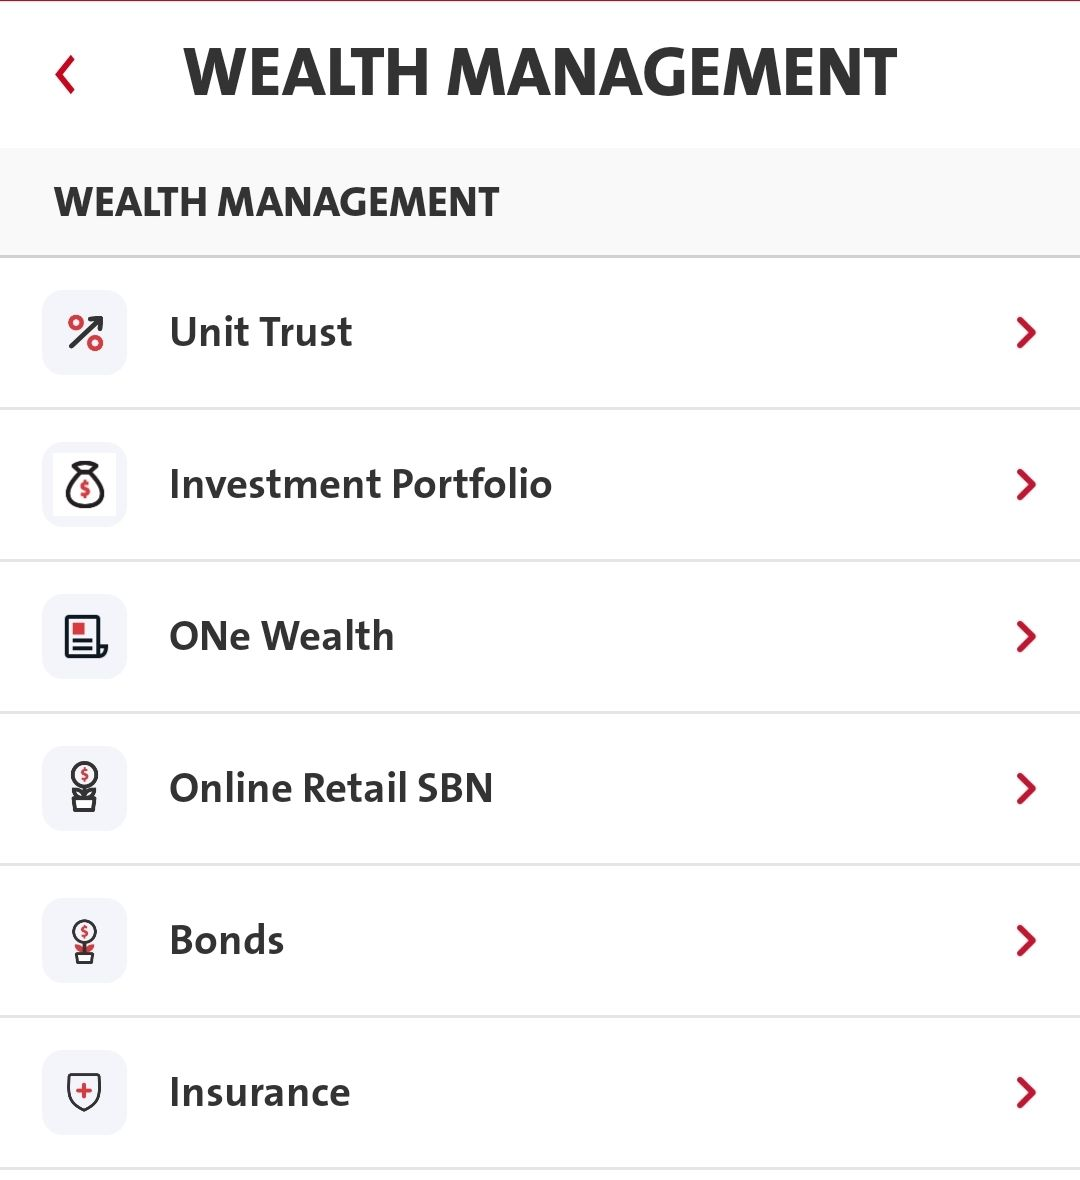 wealth management